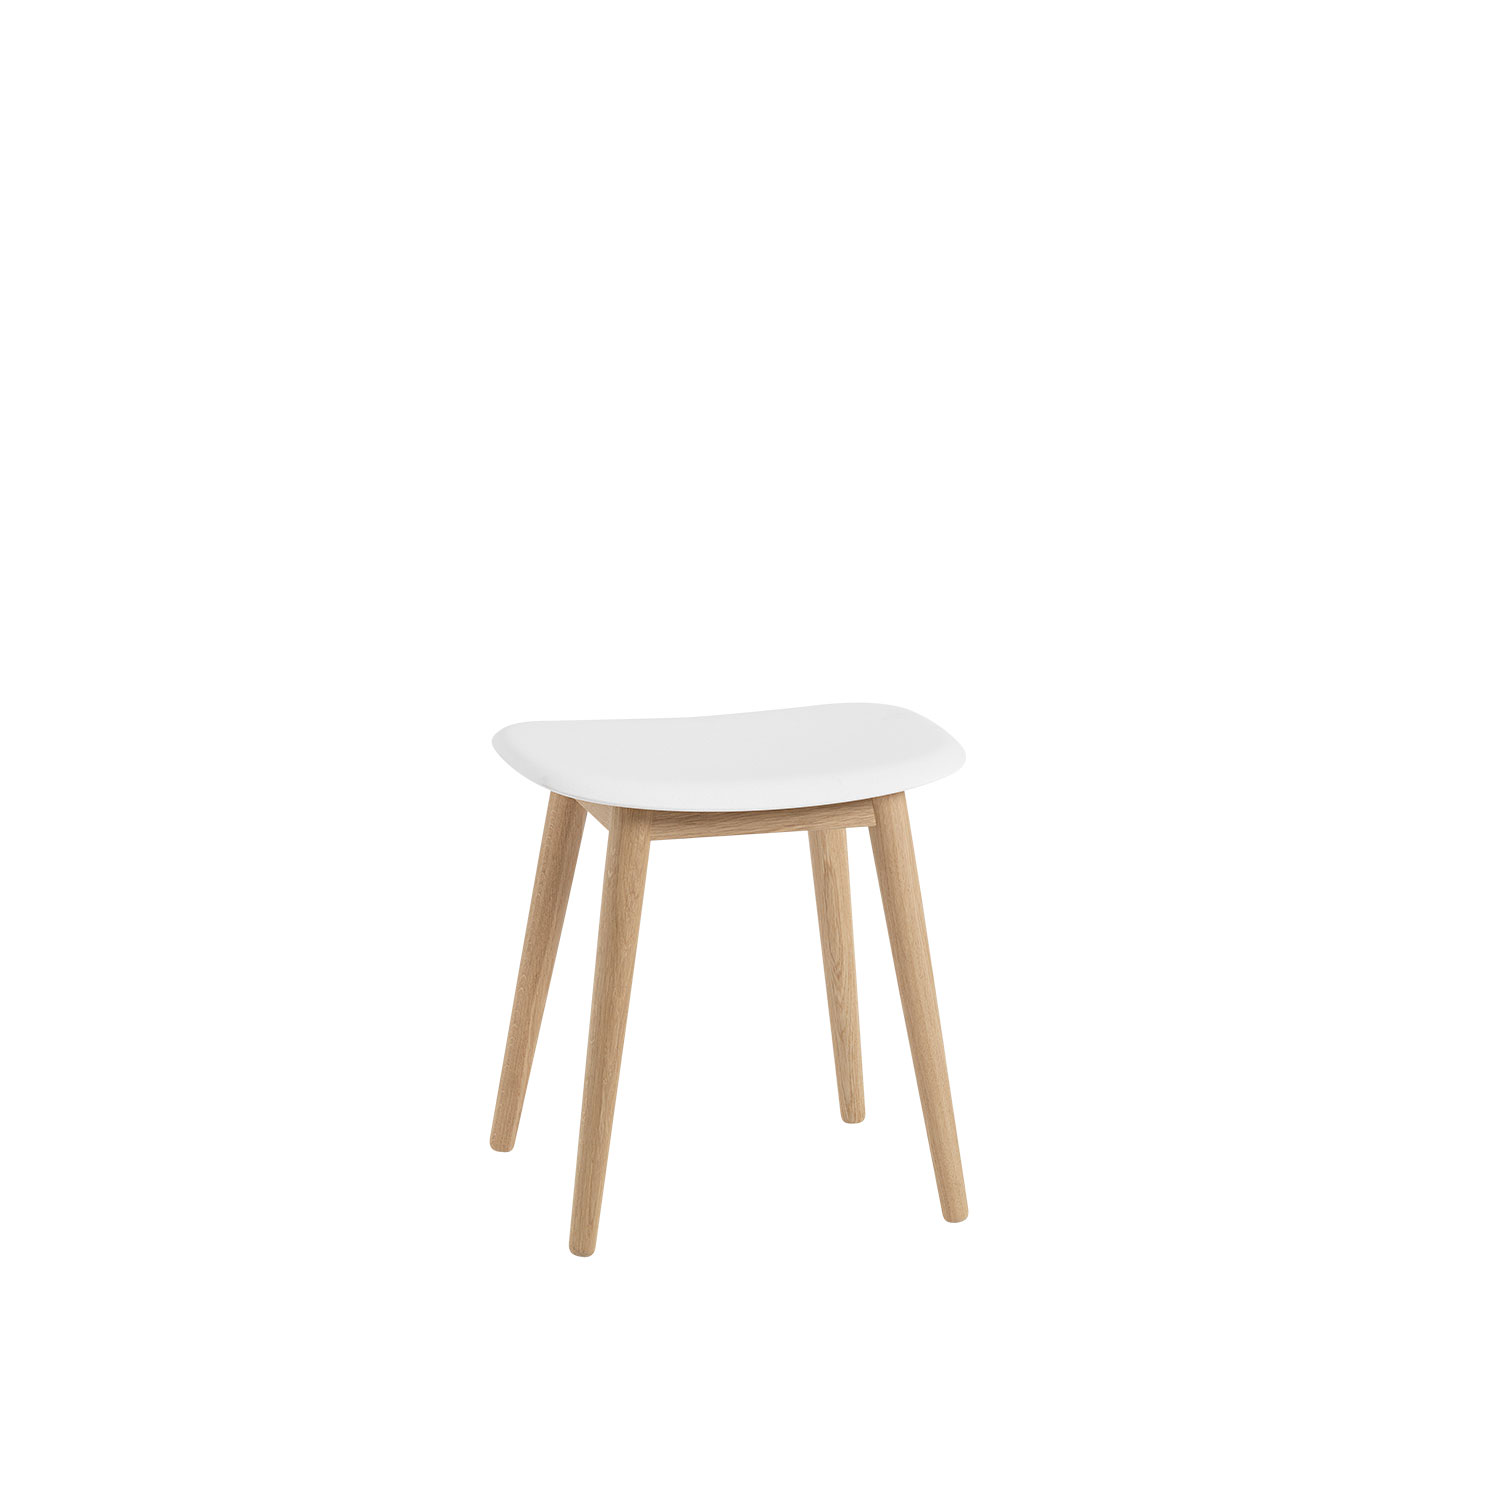 Fiber Wood stool base, naturell vit/ek